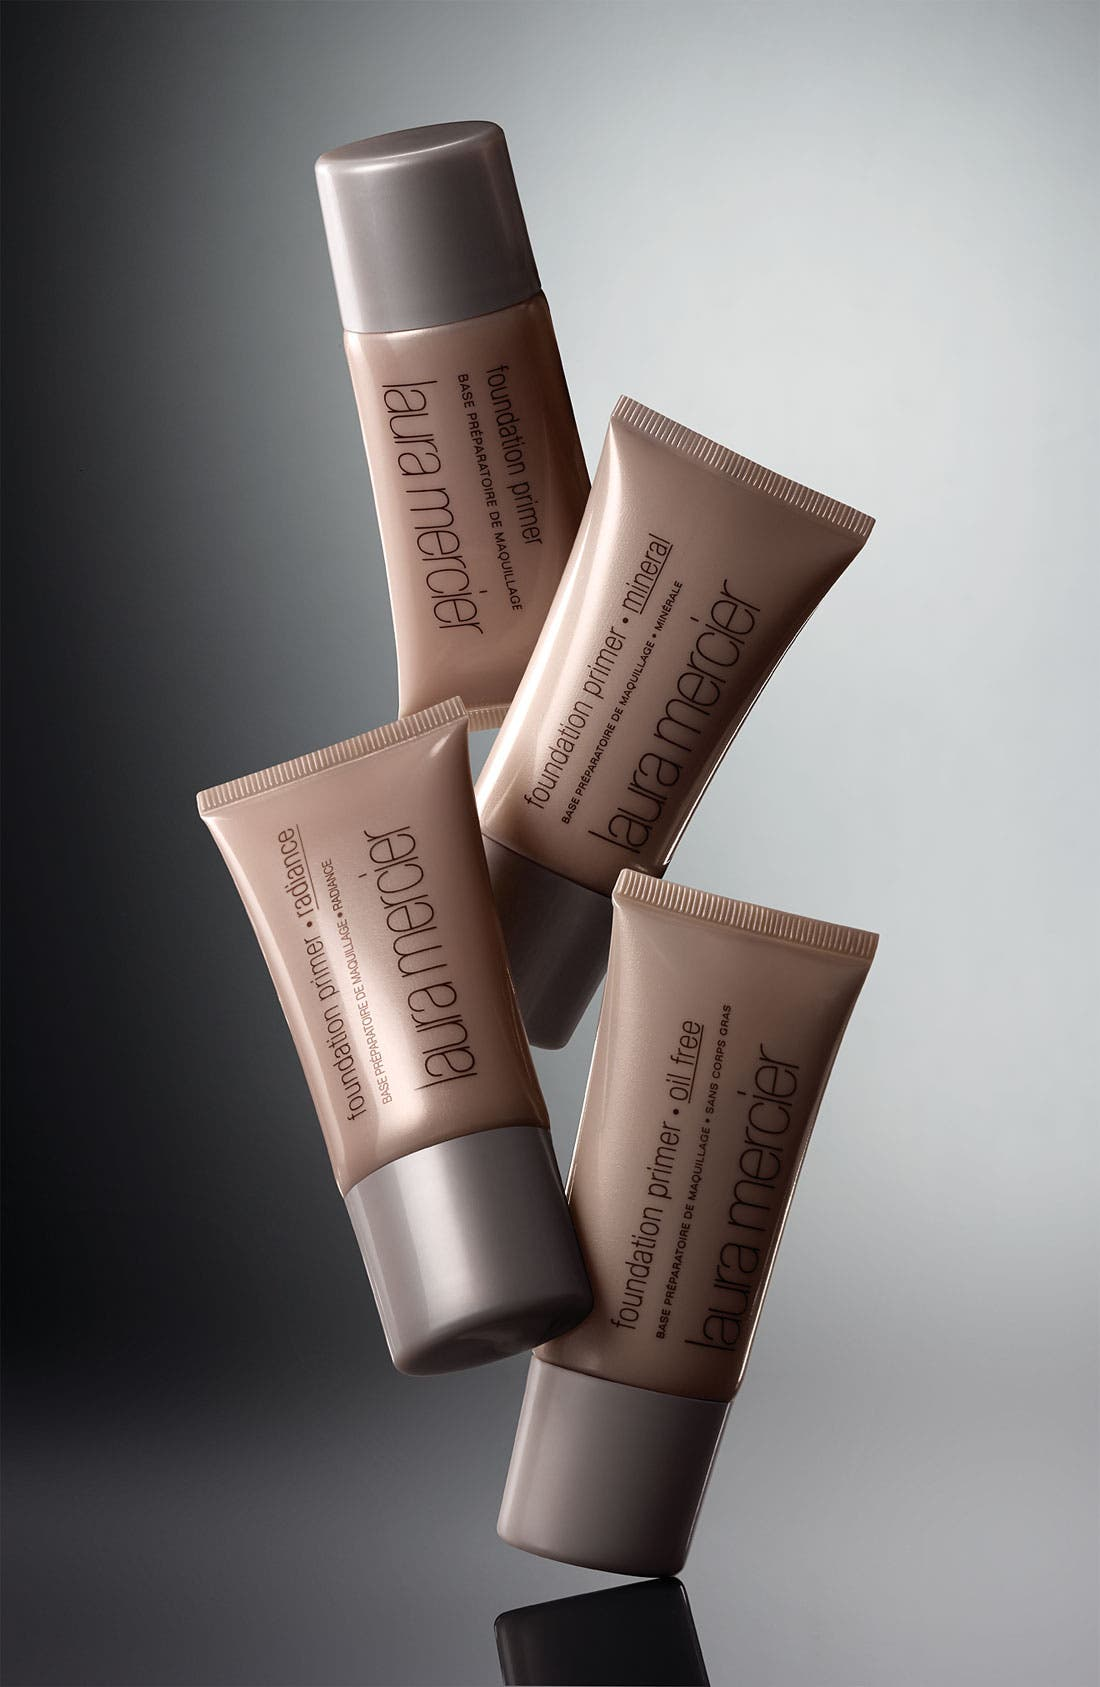 'Radiance' Foundation Primer,                         Main,                         color, 000